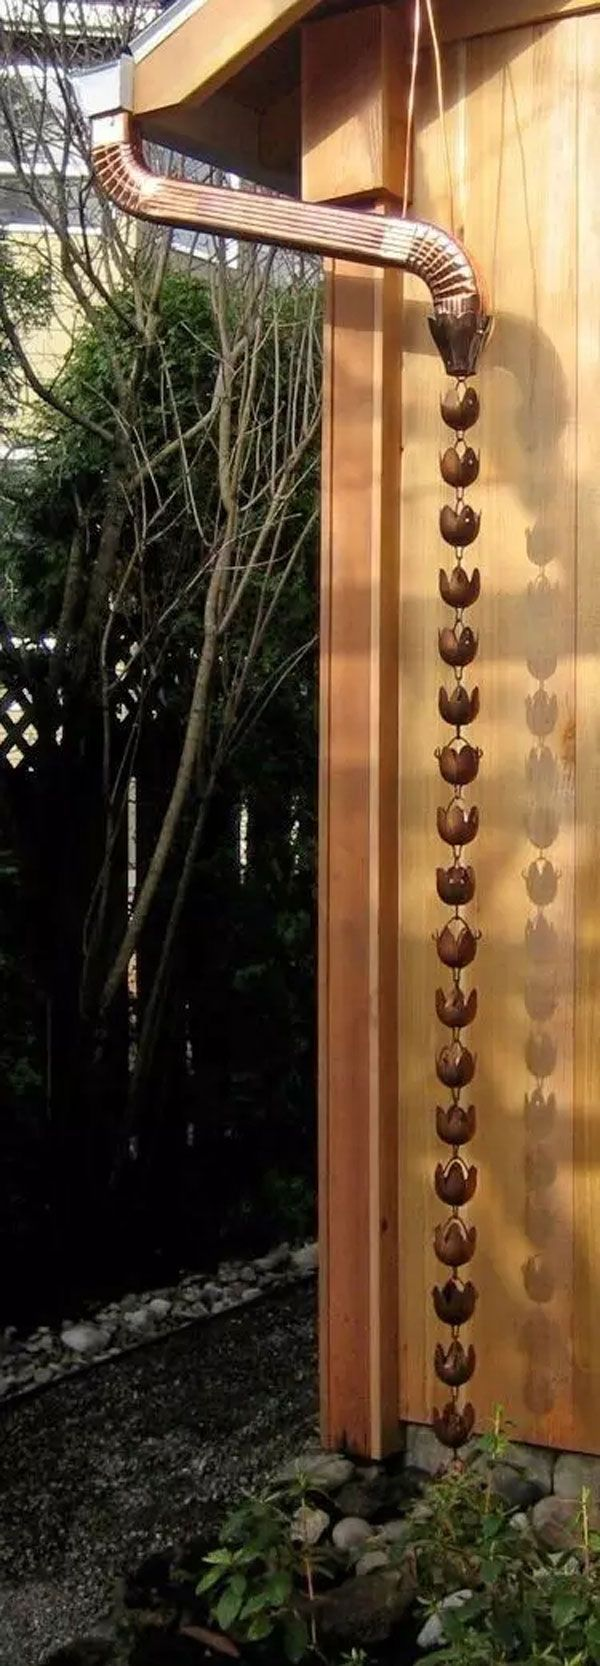 Best 25 Rain Chains Ideas On Pinterest Rain Chain Diy